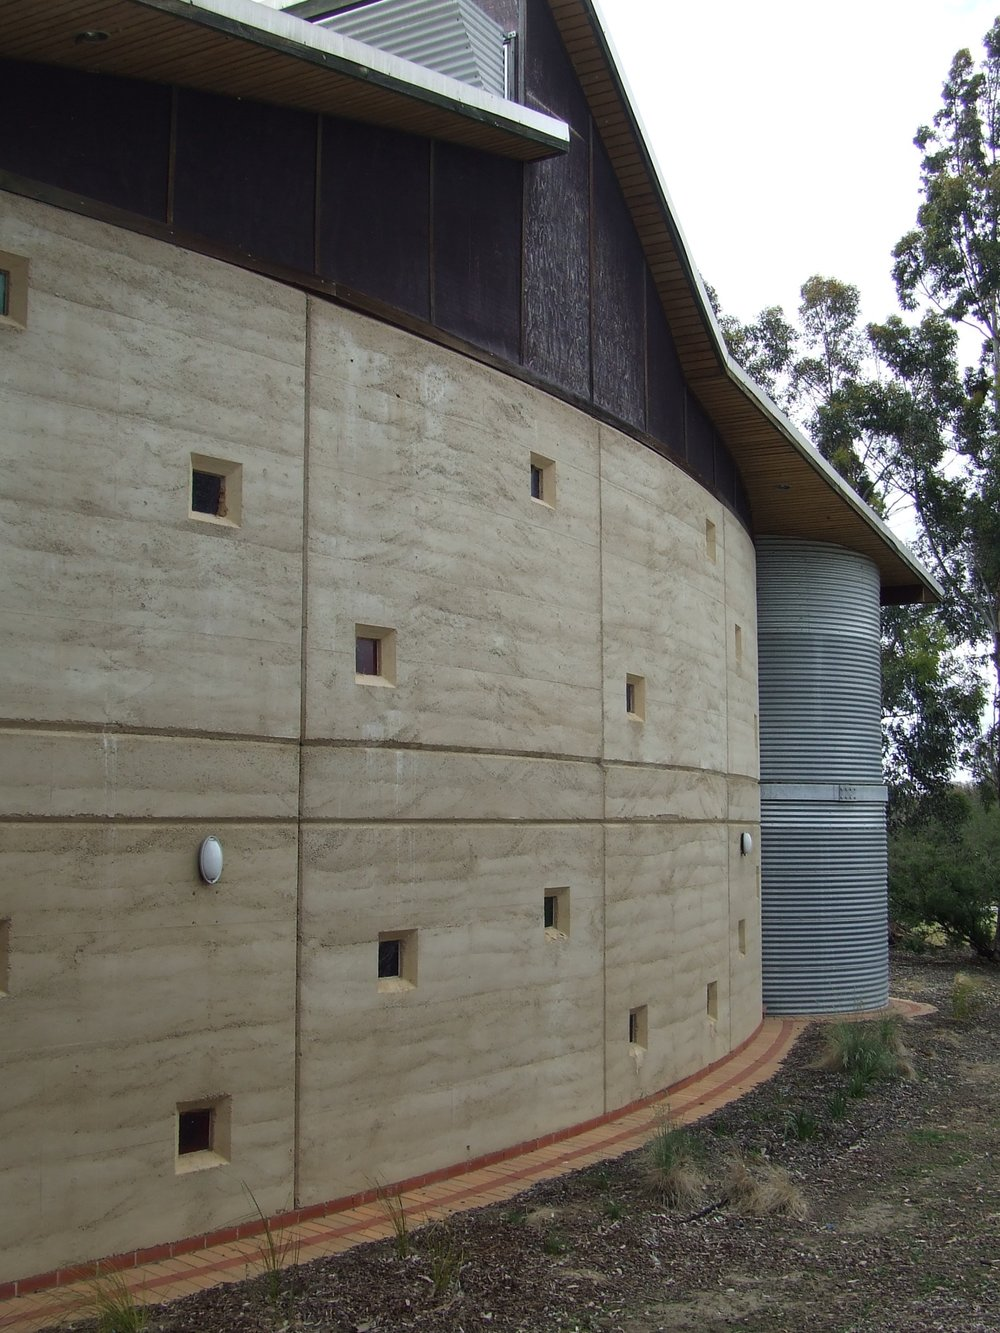 Despite being a monolithic structural element, the rammed earth has been sculpted into plastic and playful forms.